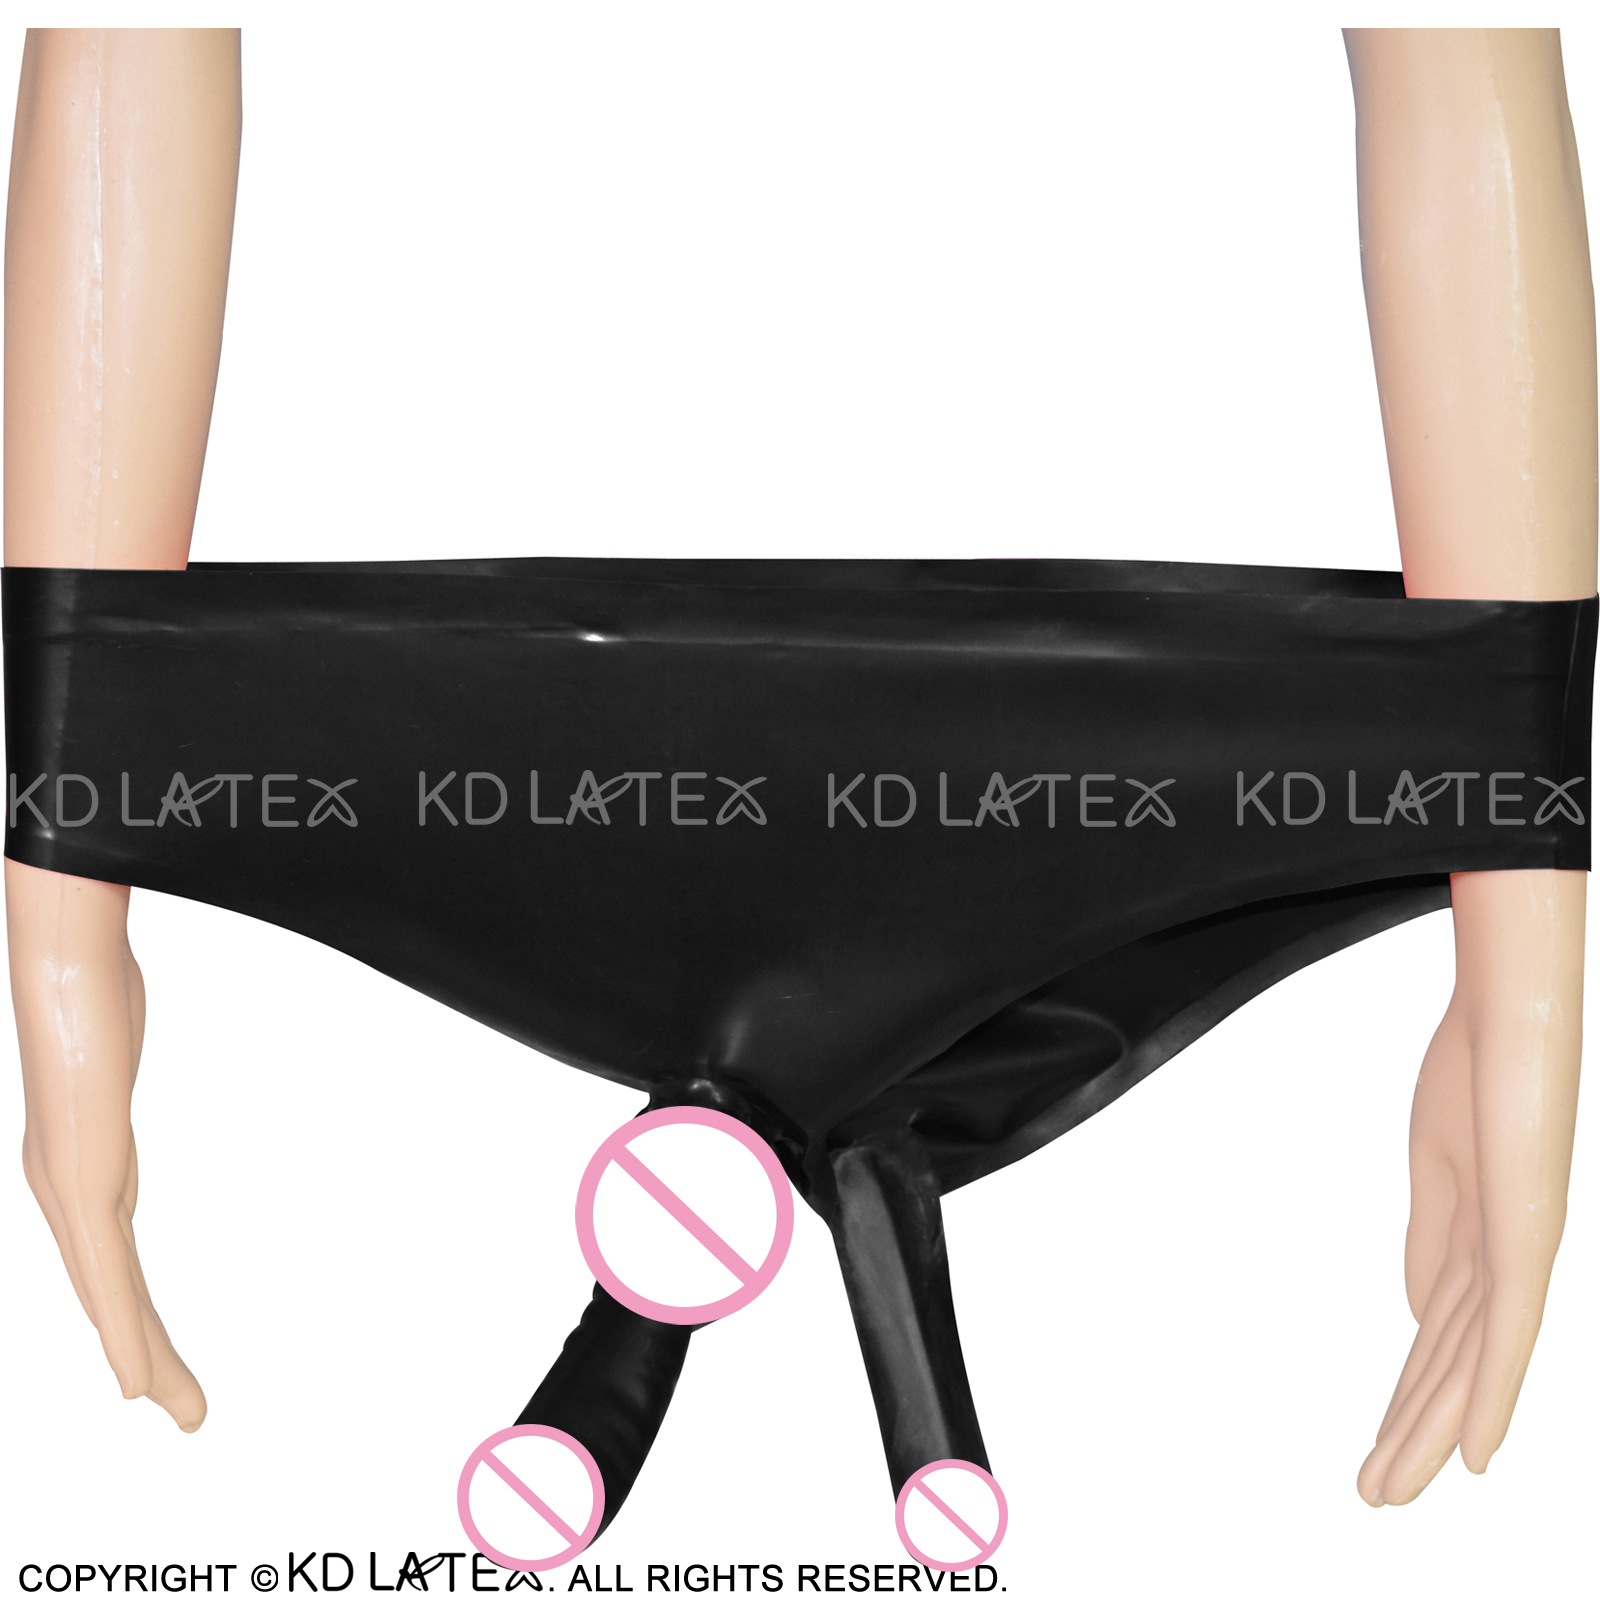 Black Sexy Rubber Latex Briefs With Anatomical Penis Sheath And Anal Condom Shorts Bottoms DK 0008